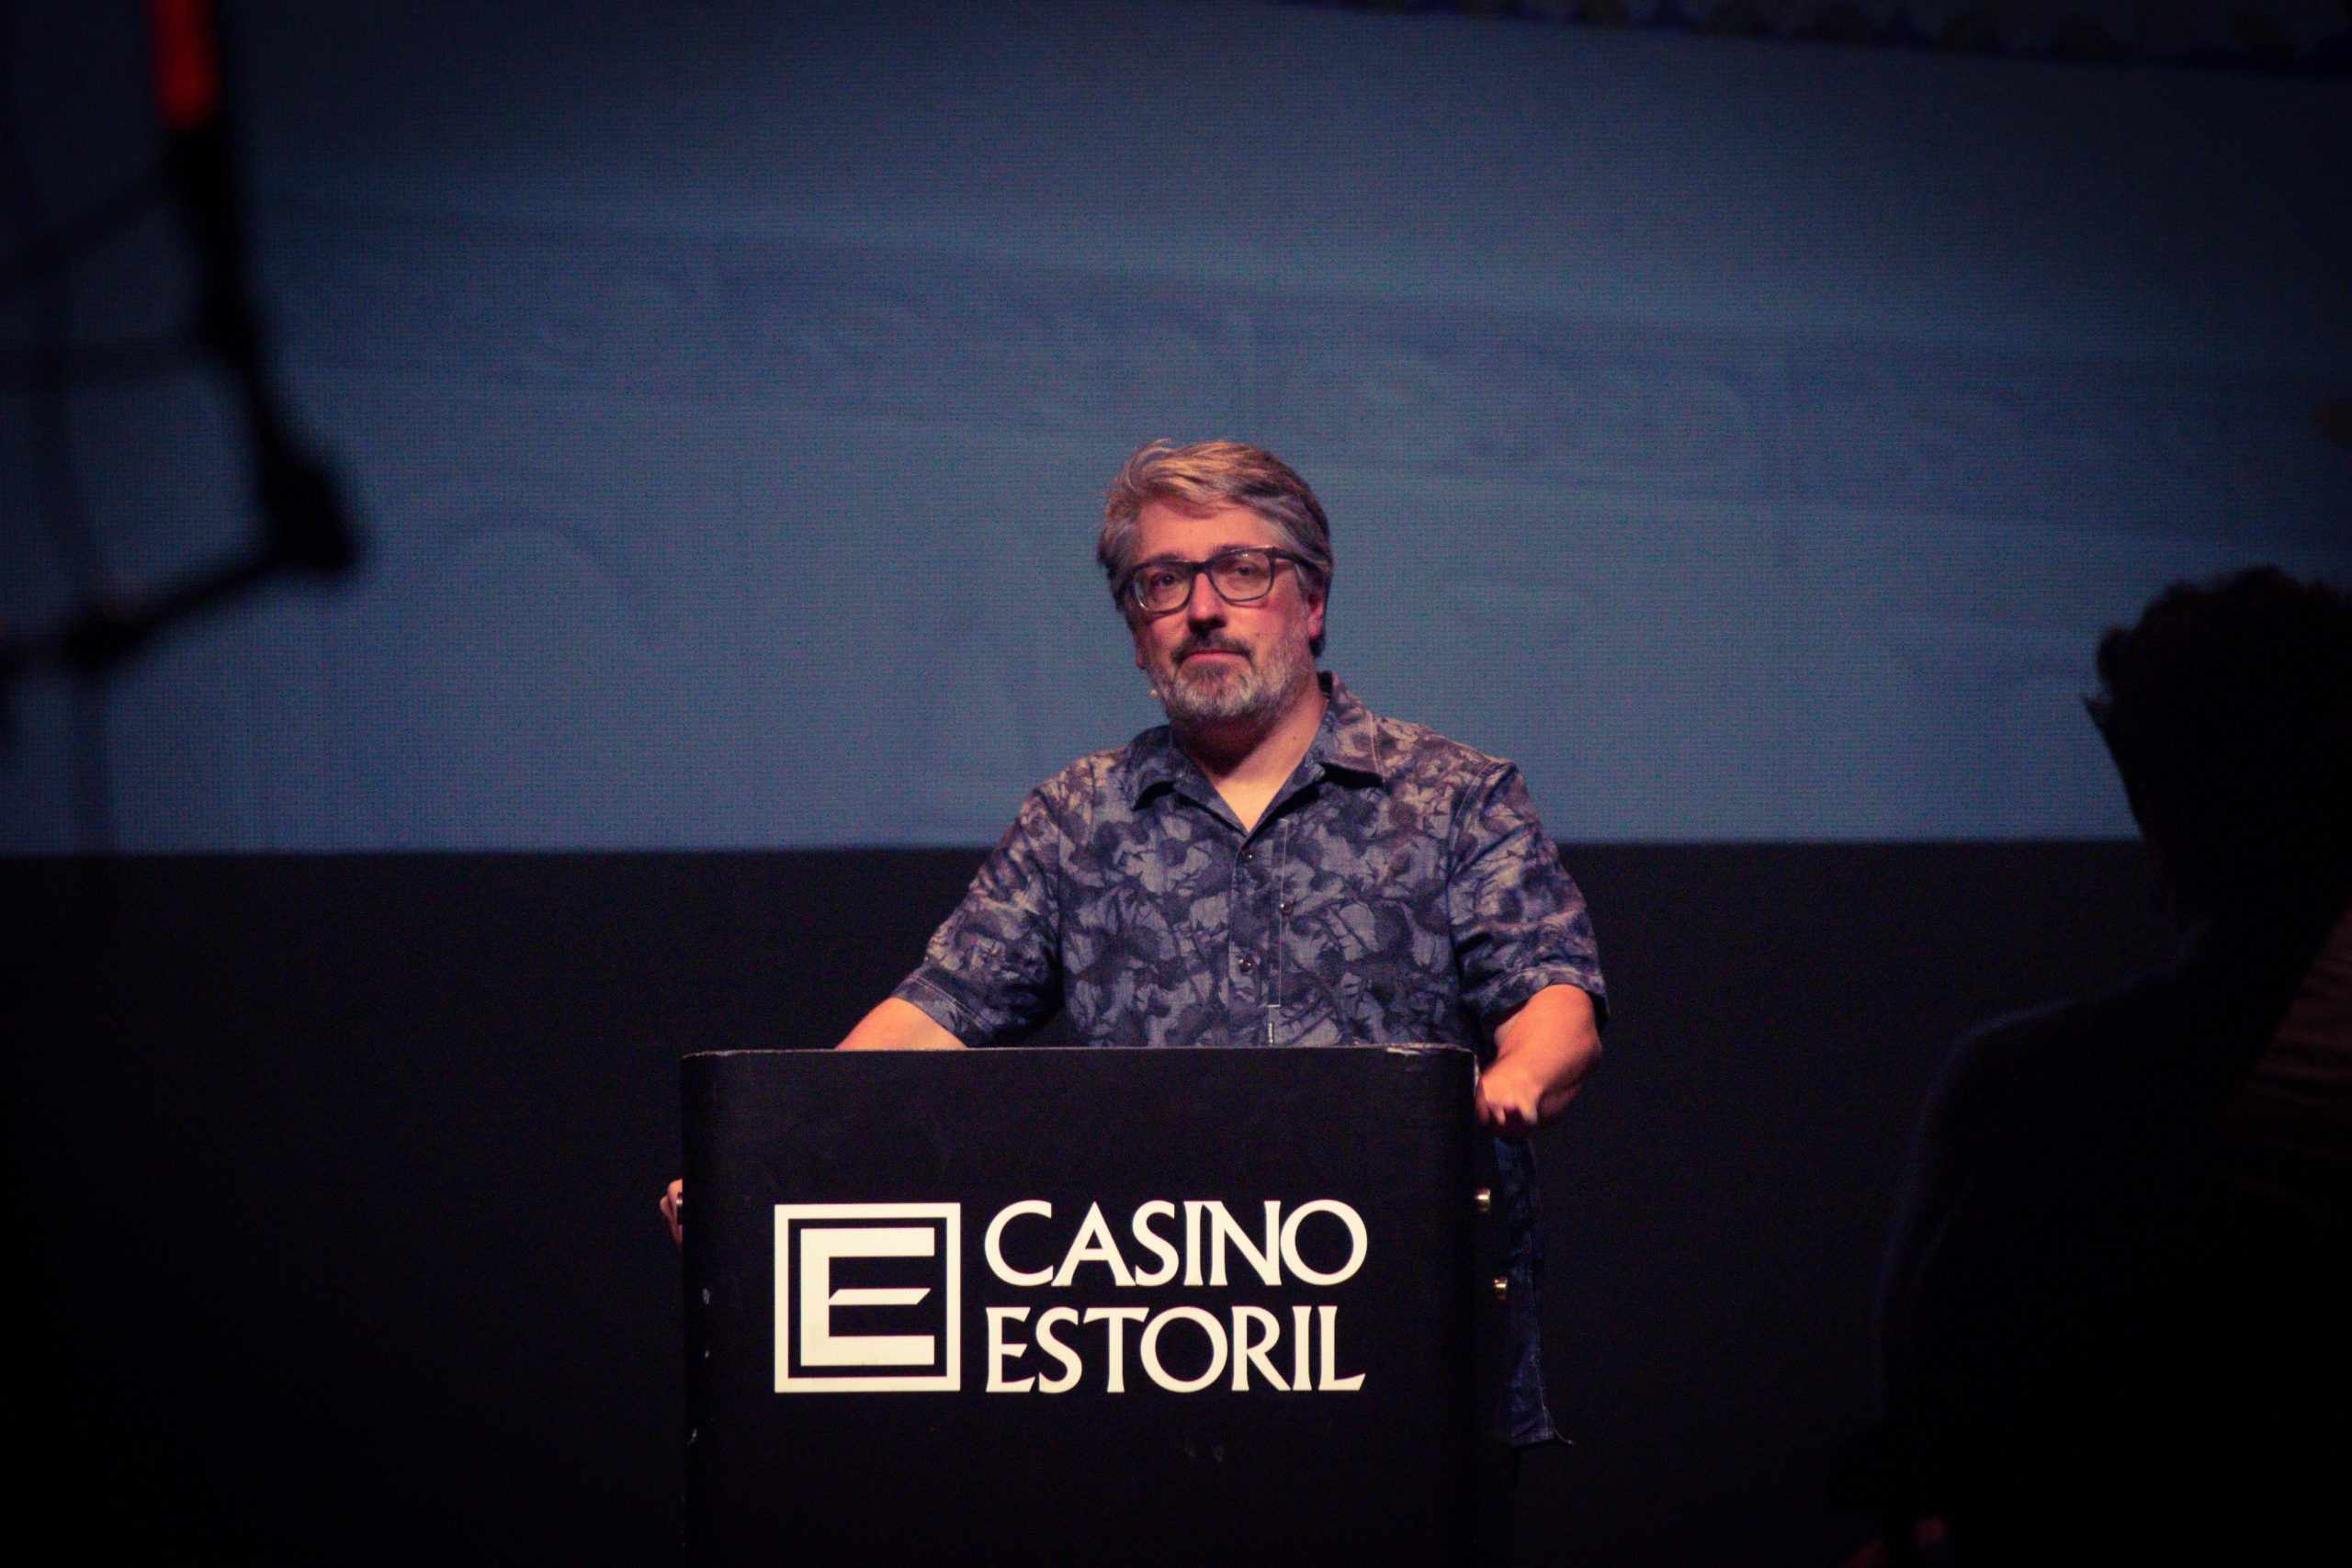 Nuno Markl – Serões no Casino Estoril